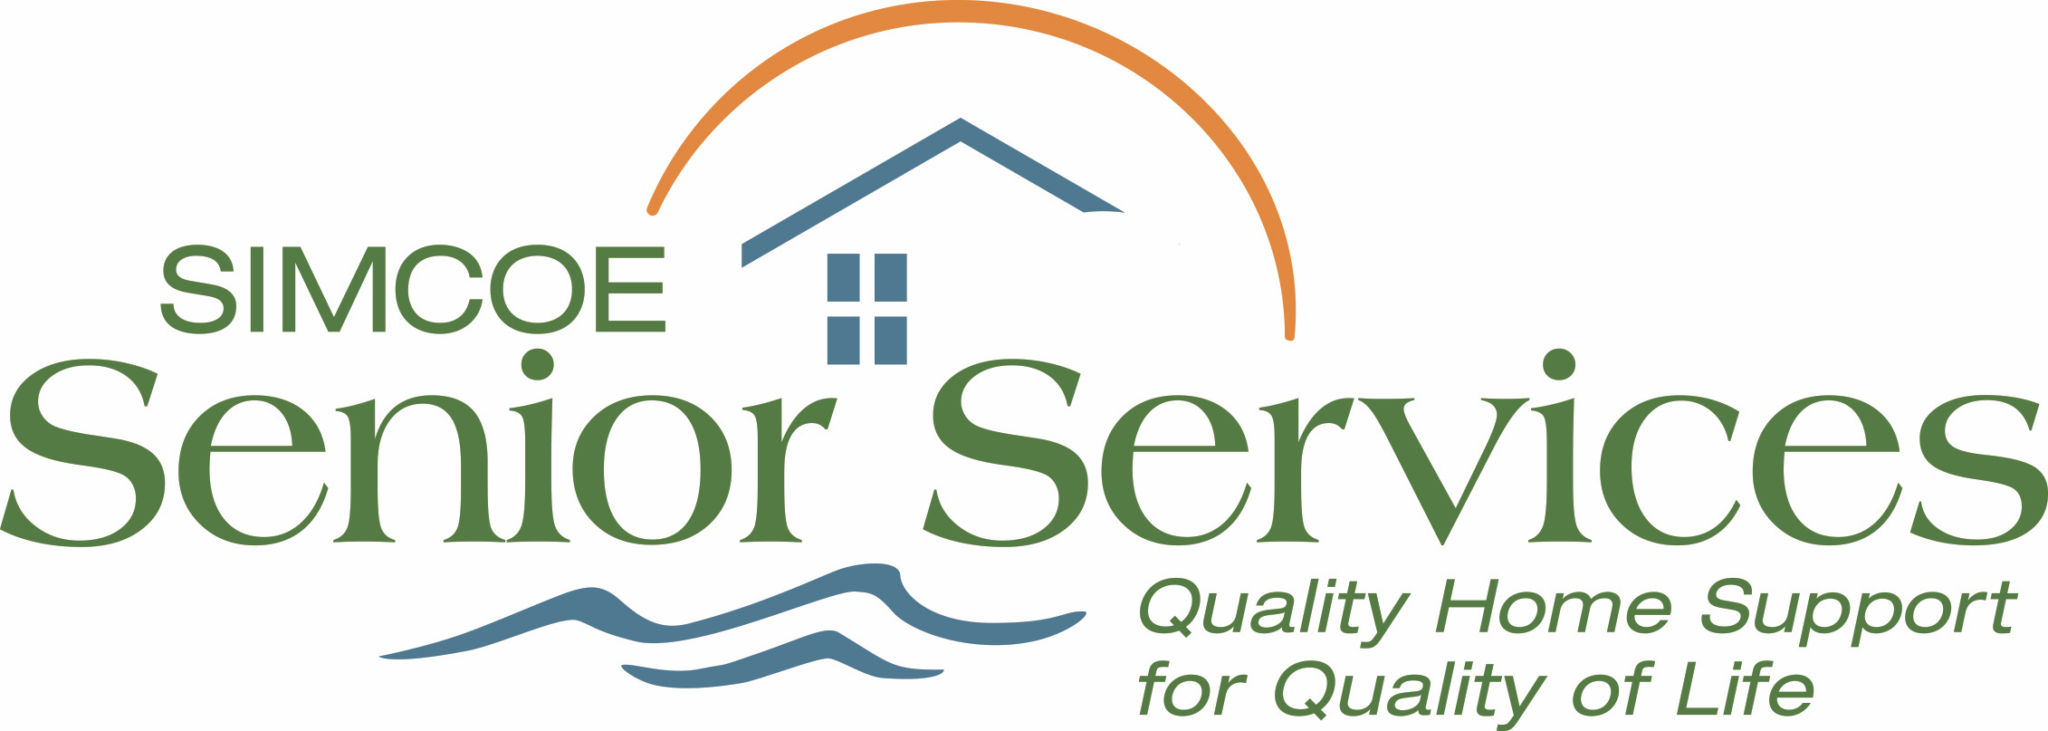 Simcoe Senior Services logo. Senior Home Care in Barrie and Simcoe County